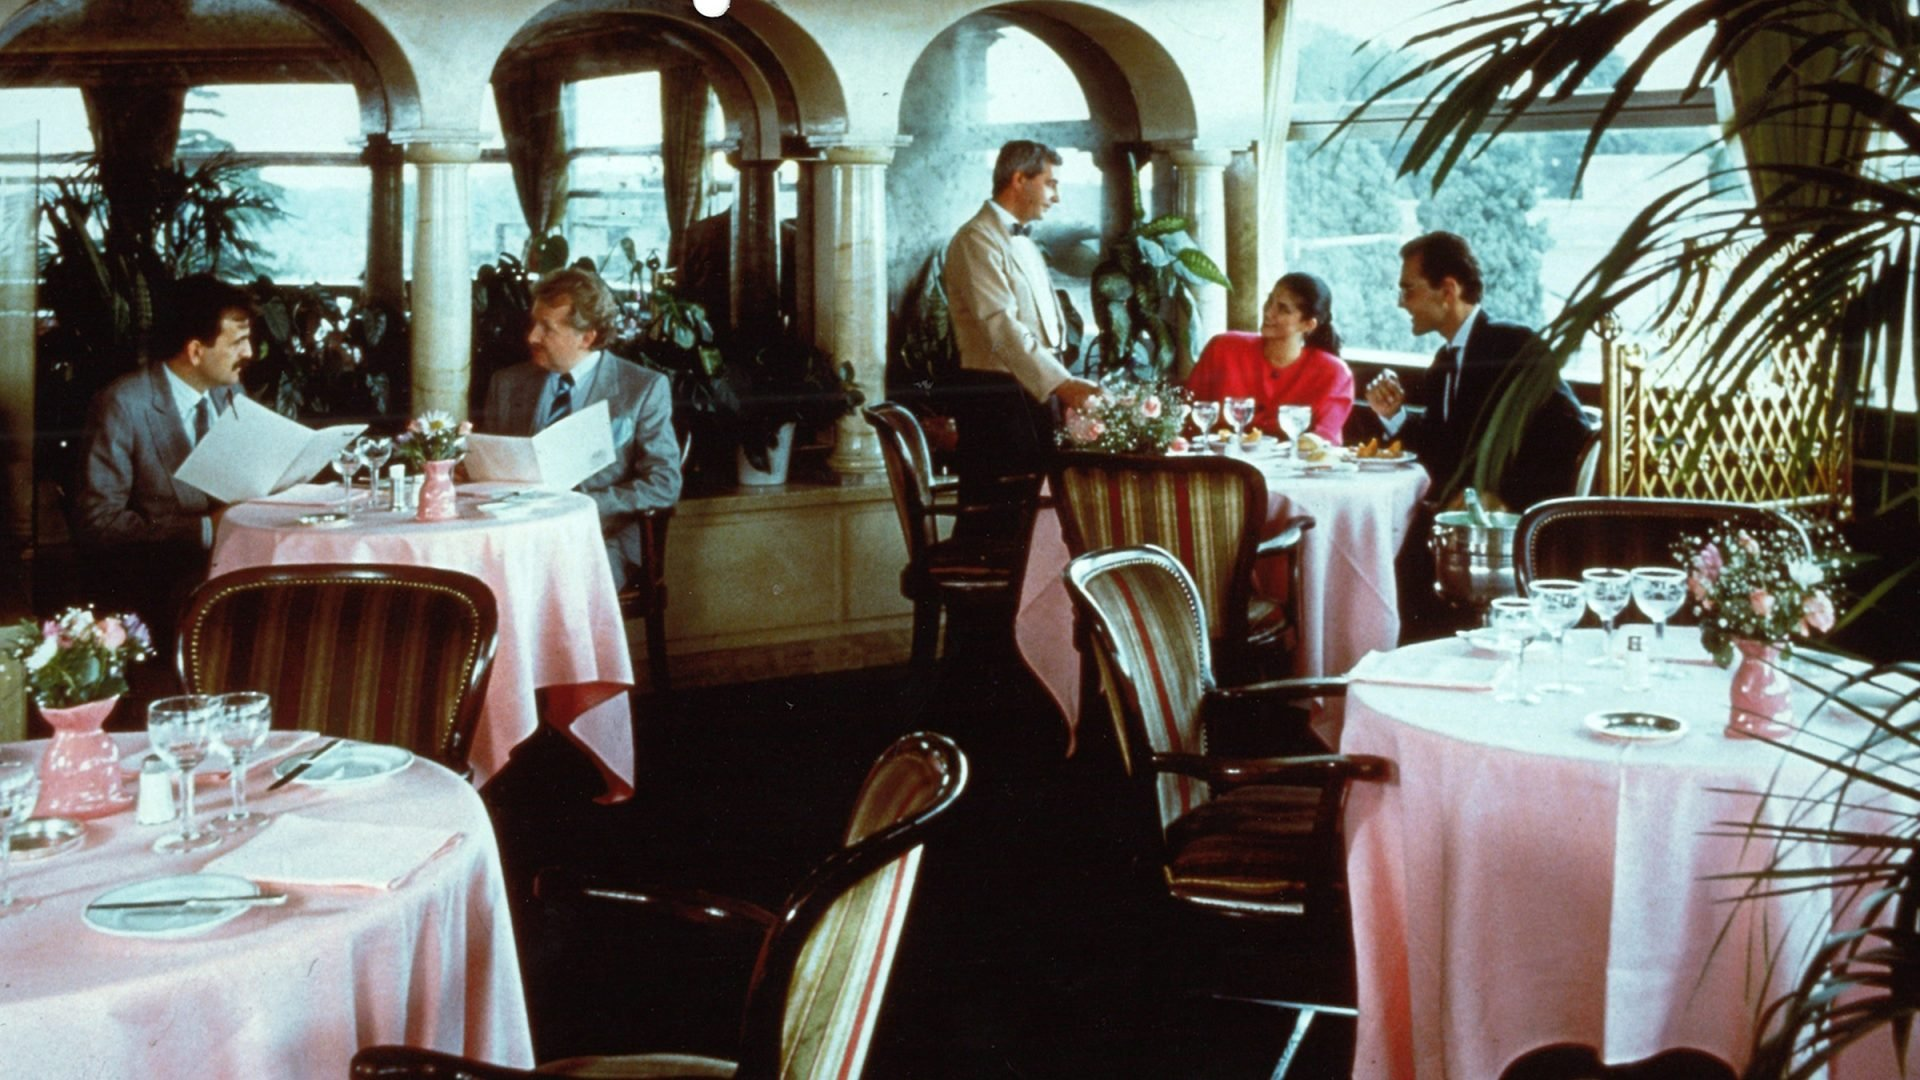 Hotel Eden during the 1960s